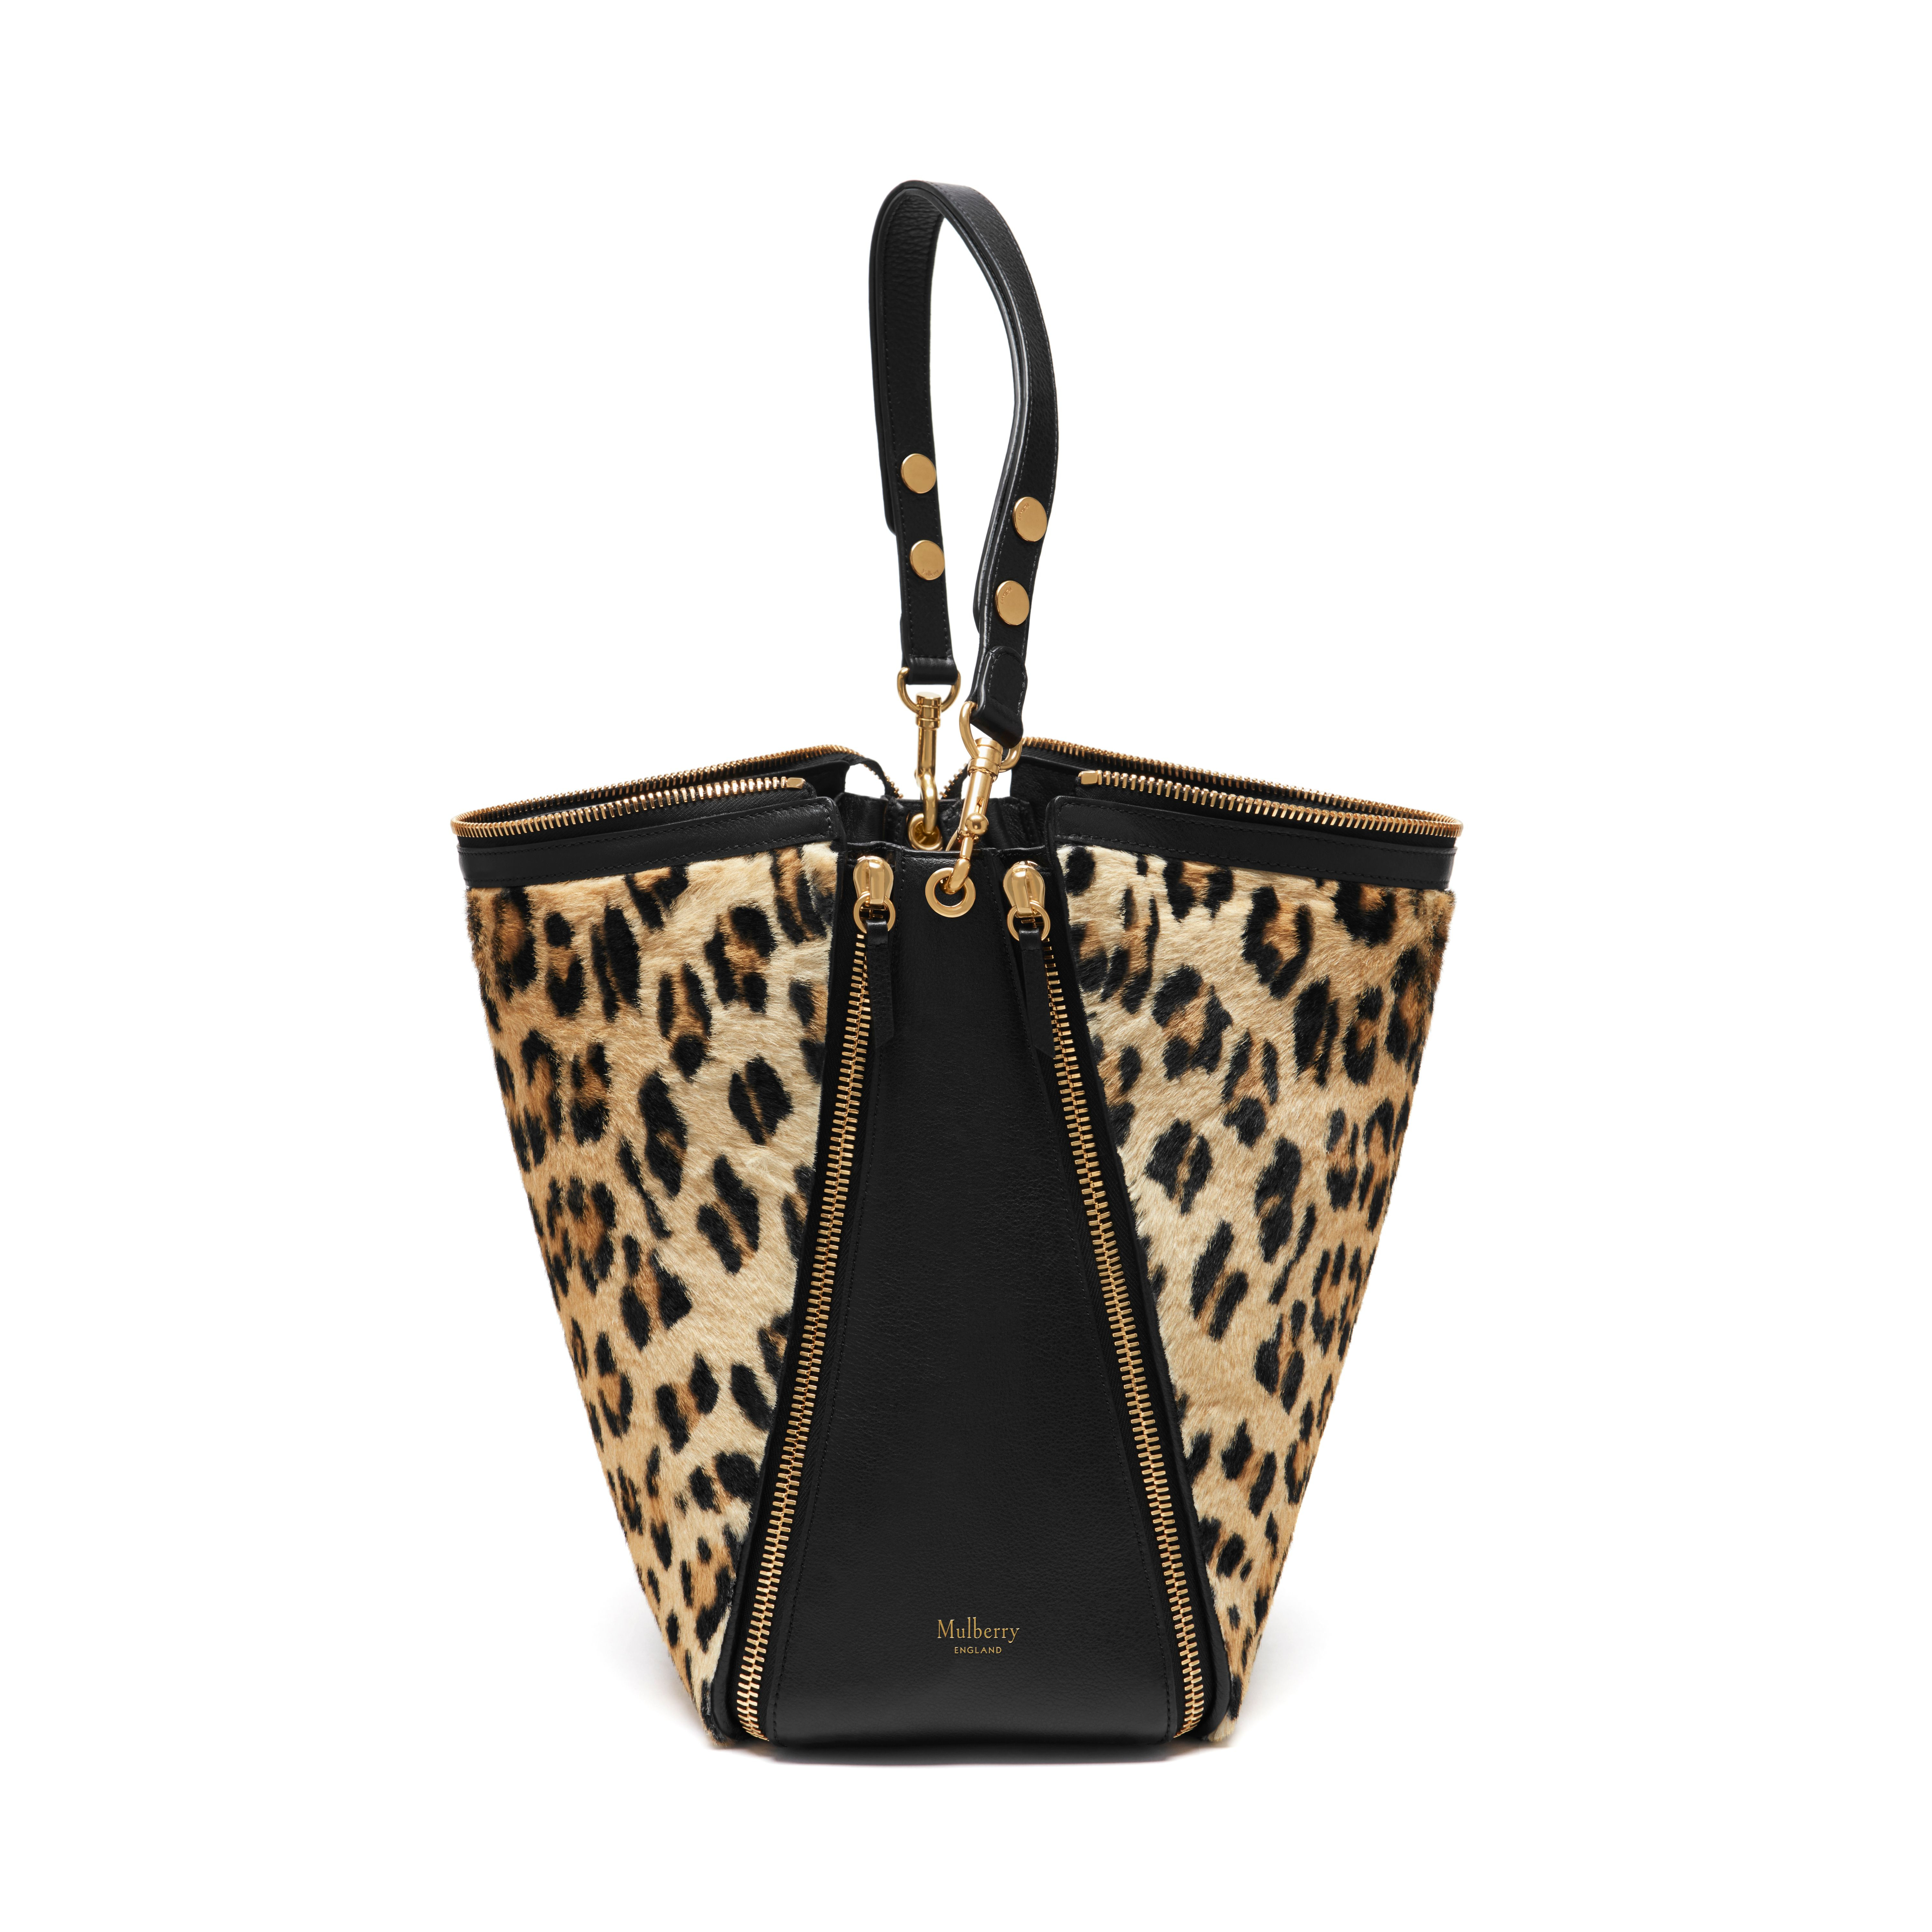 ... ireland lyst mulberry camden leopard print calf hair and leather tote  bag 82def d7598 31fc19a3ea8a0